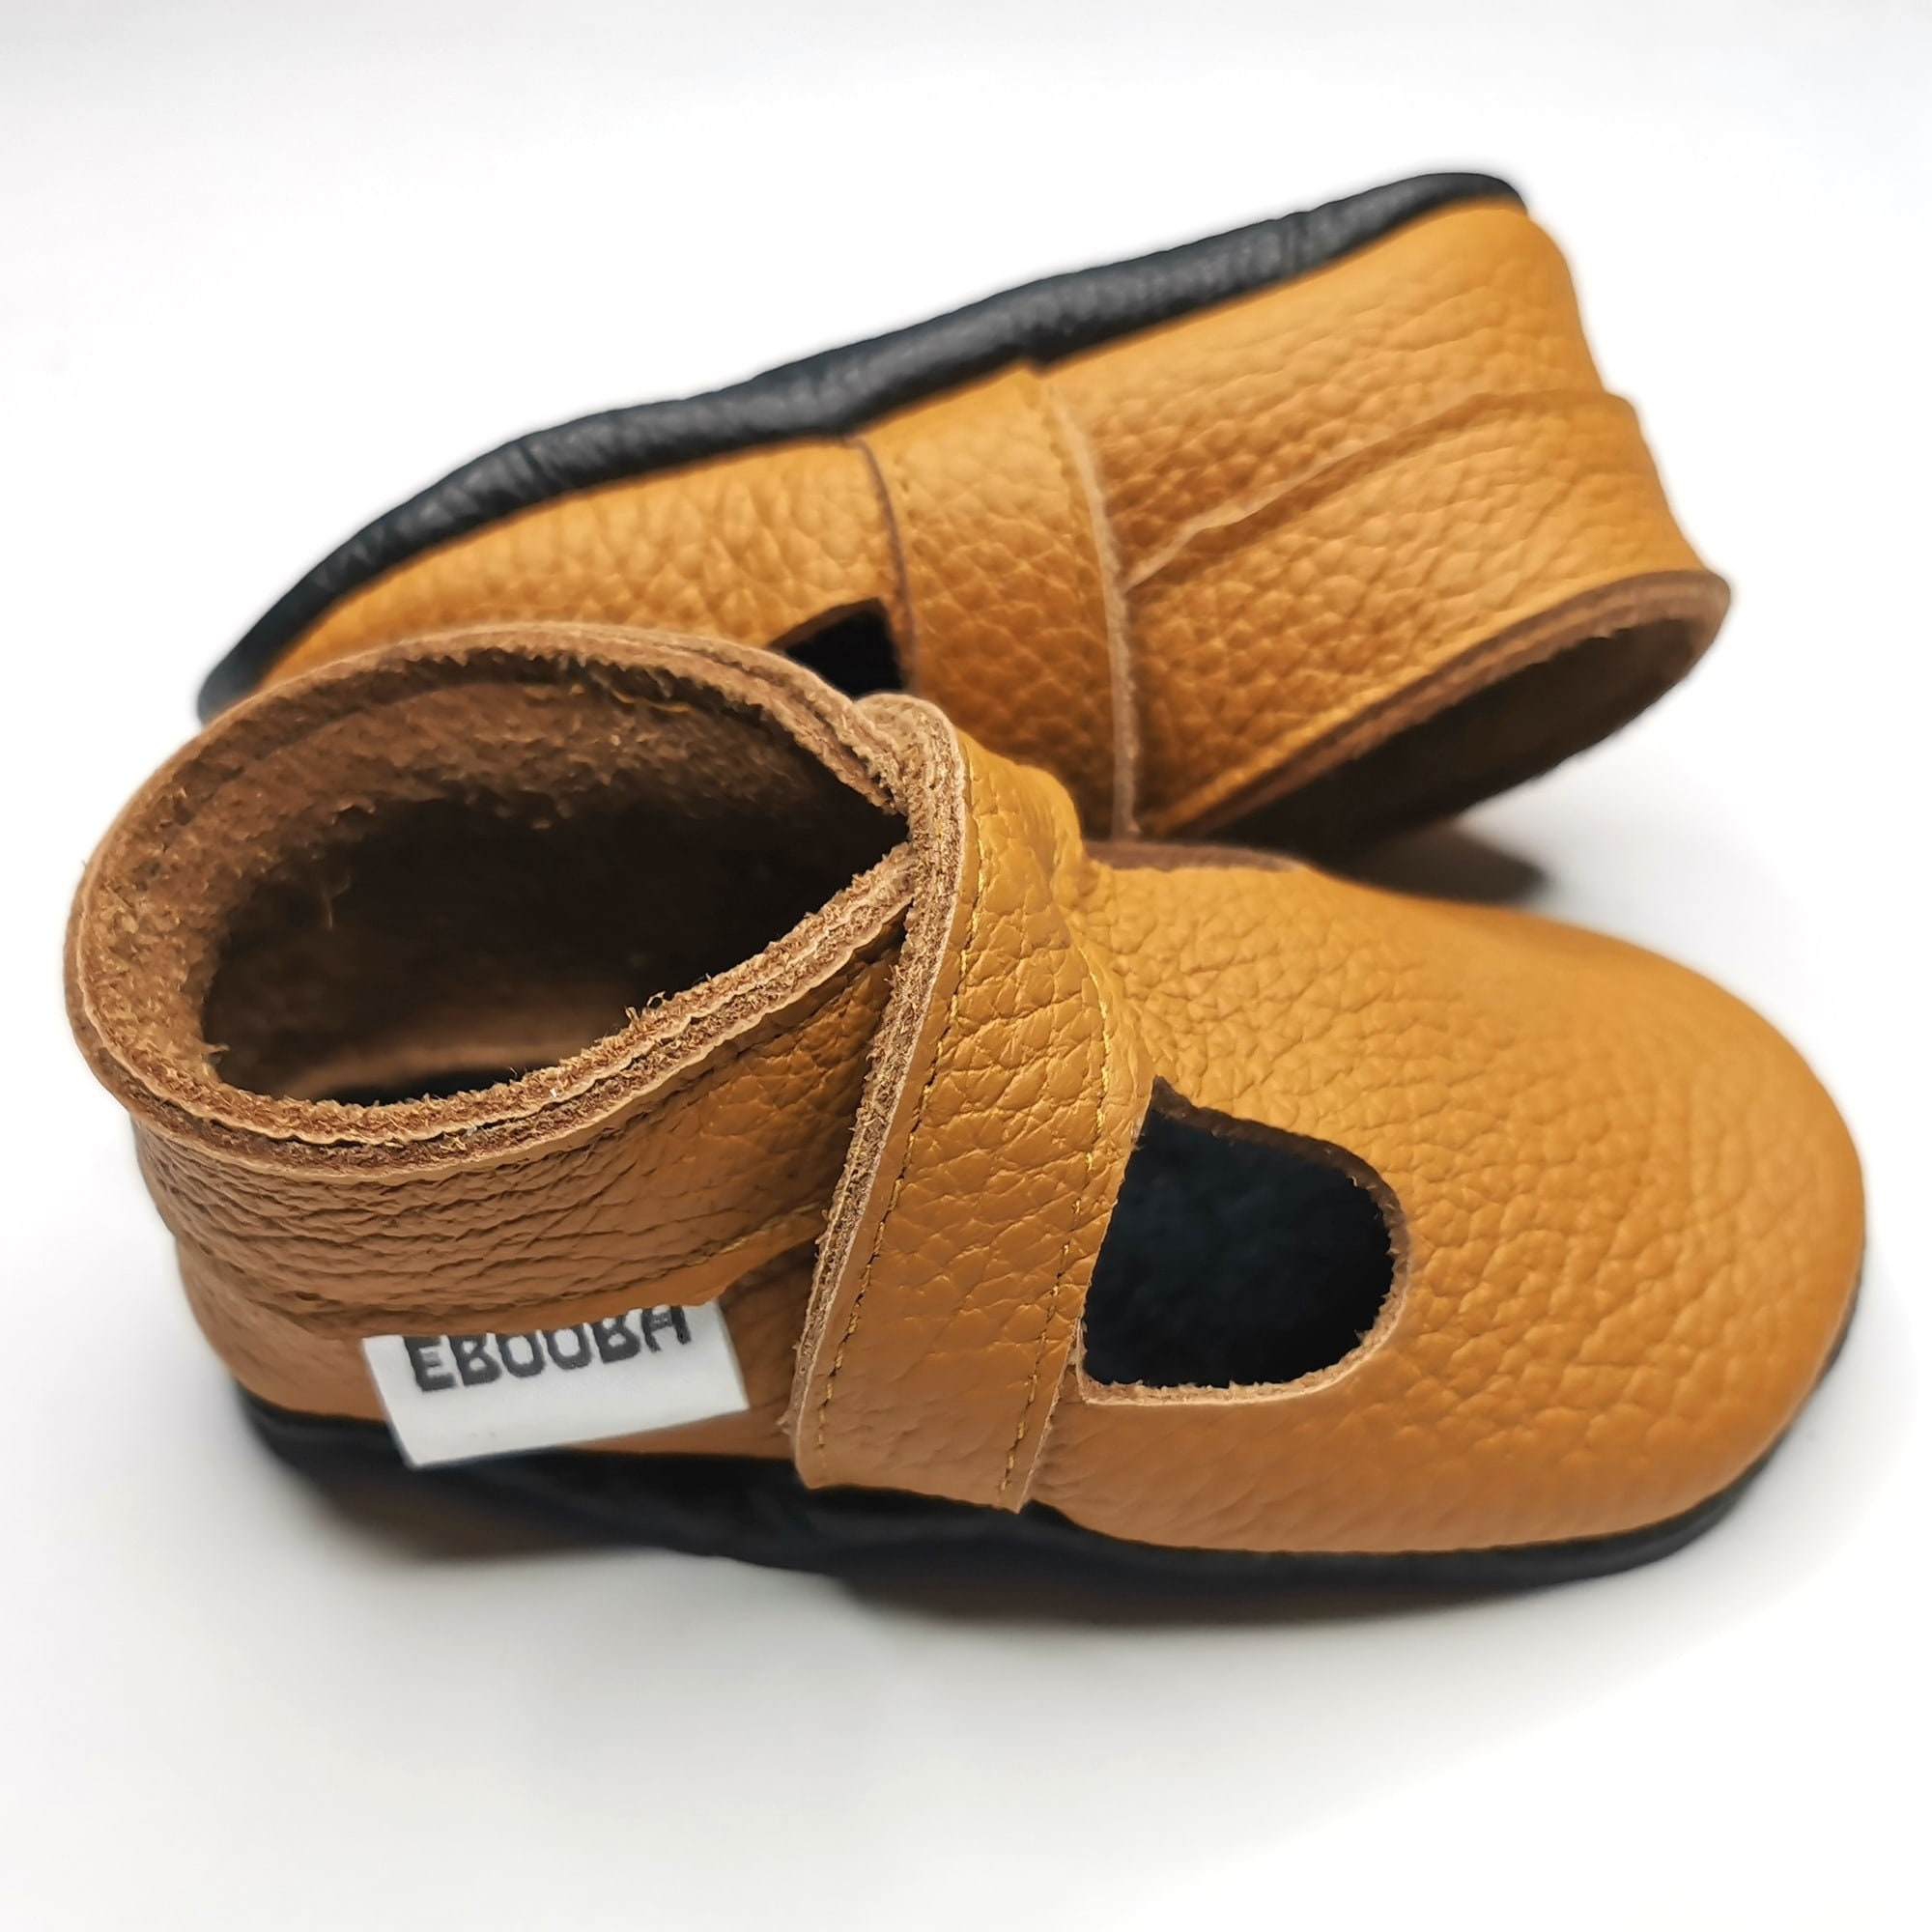 Baby ShoesBaby Leather ShoesEboobaBaby